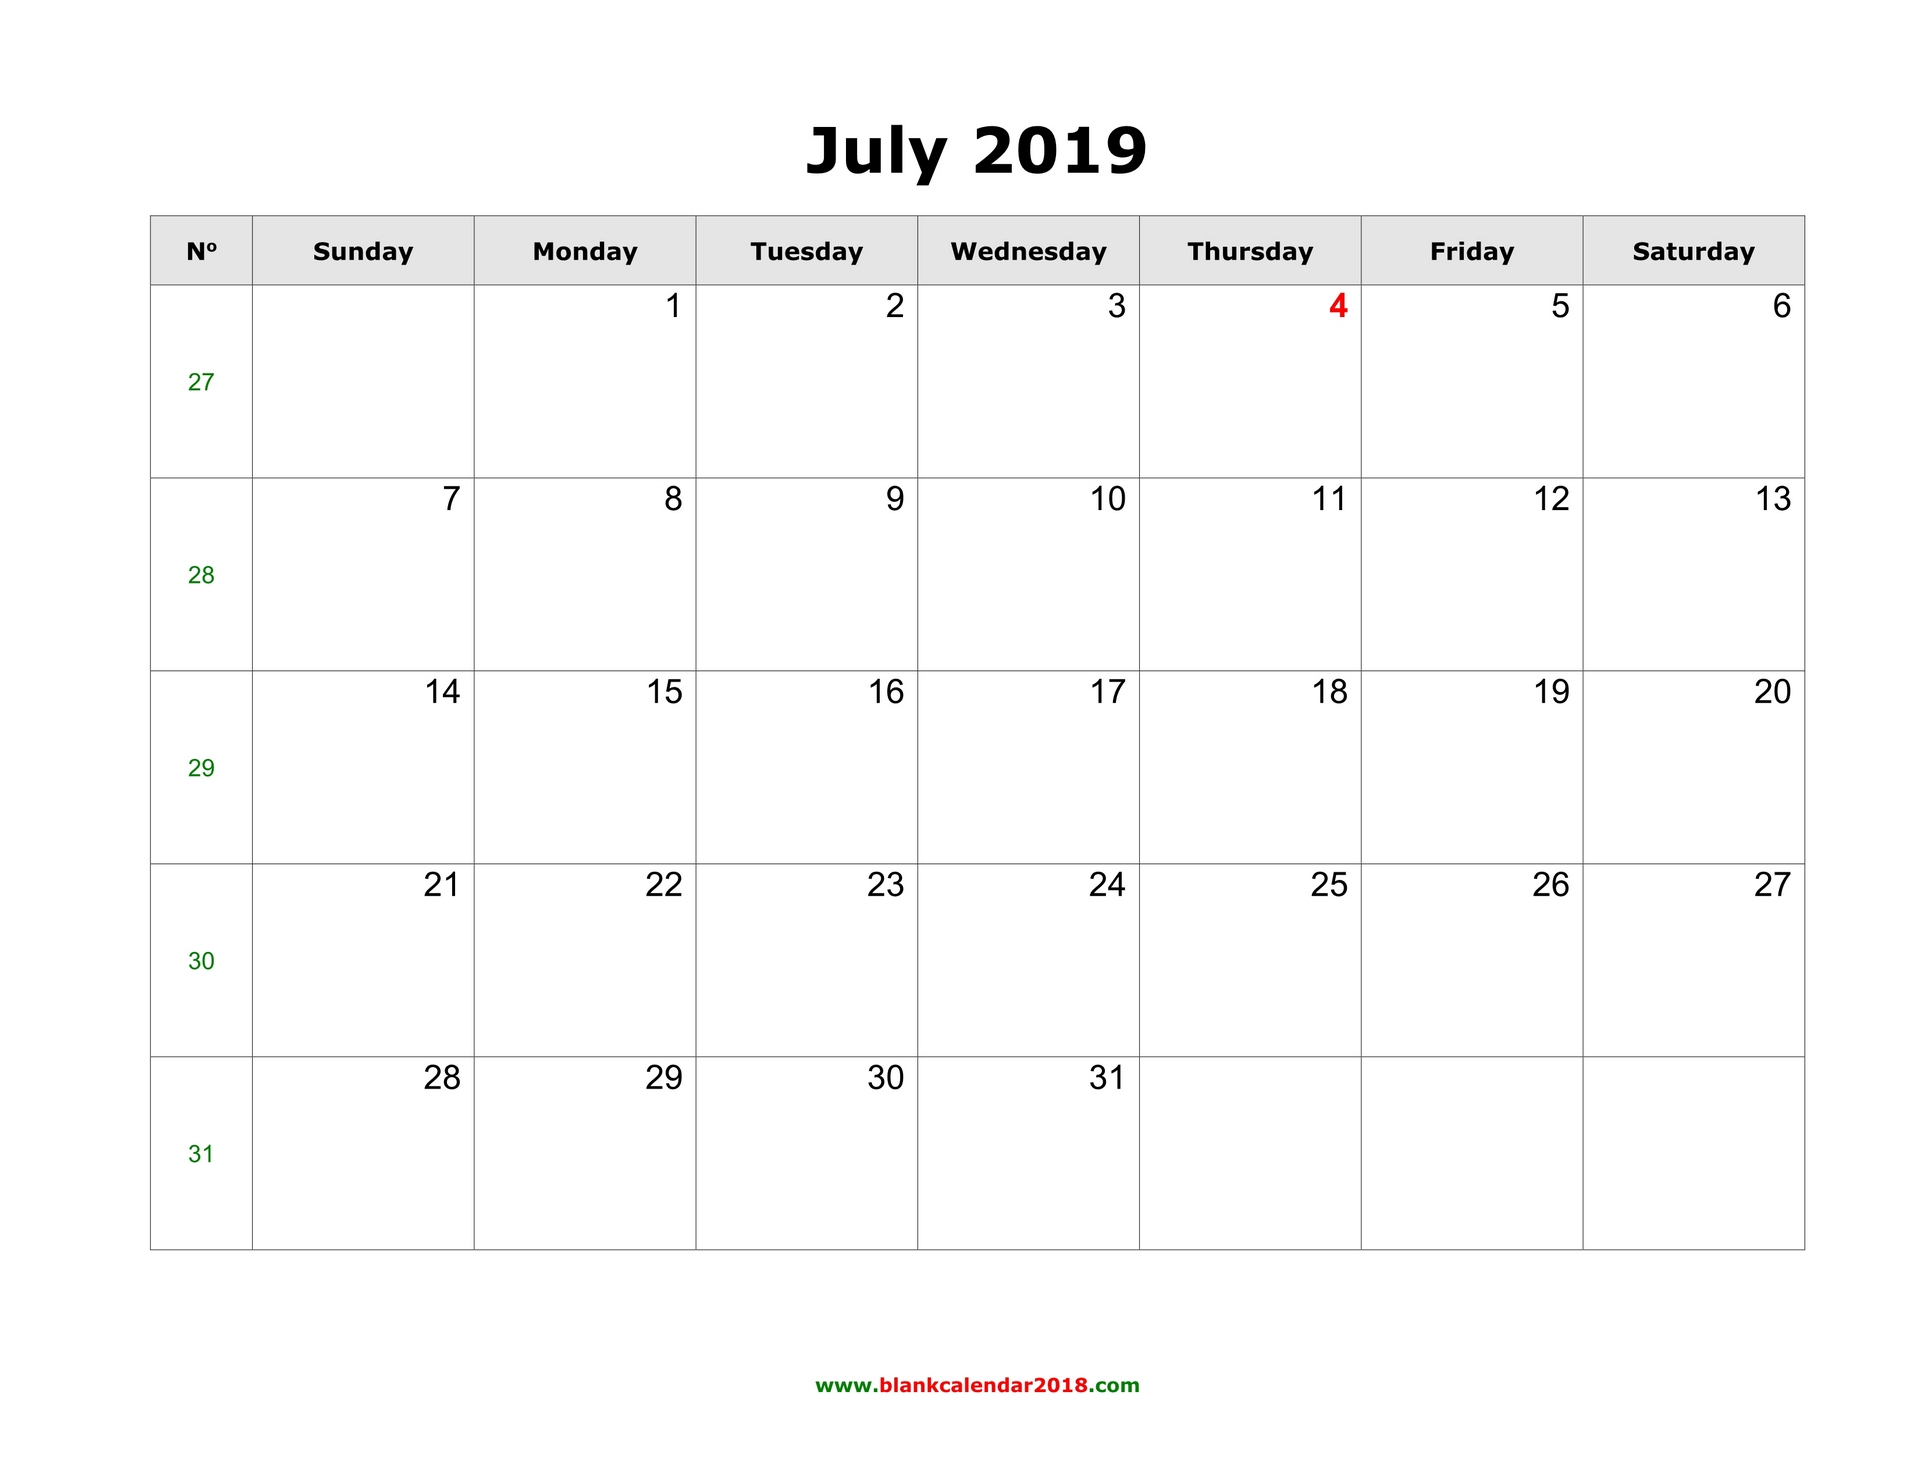 Blank Calendar For July 2019 for Are Daily Holiday Calendars Copyright